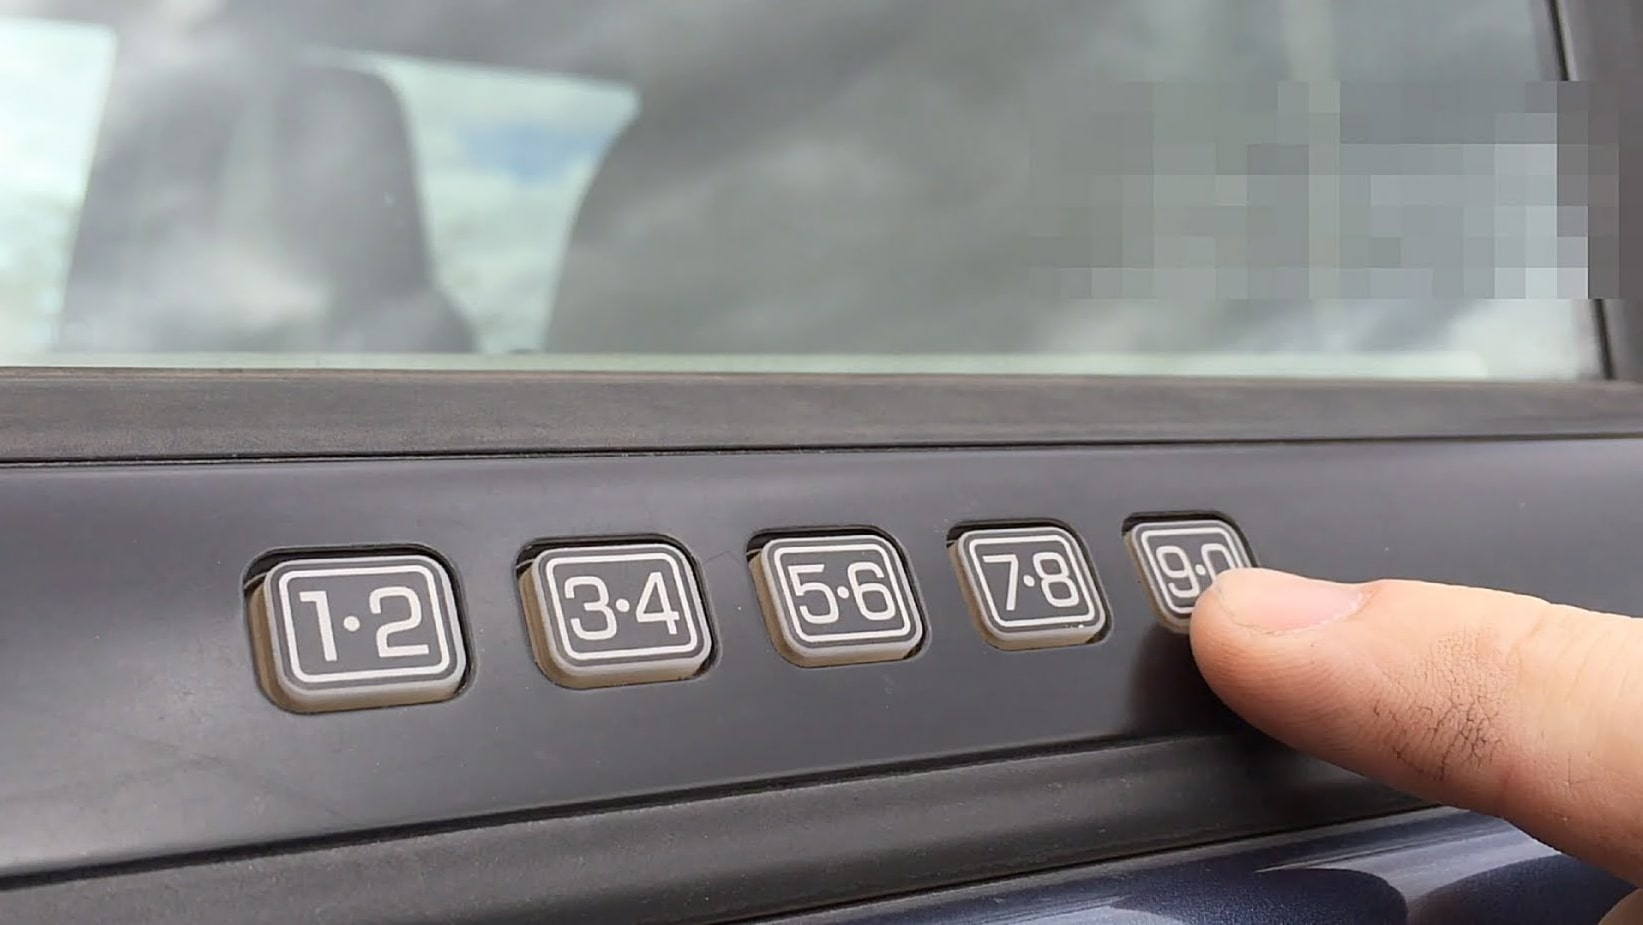 How To Reset Ford Keyless Entry Without Factory Code